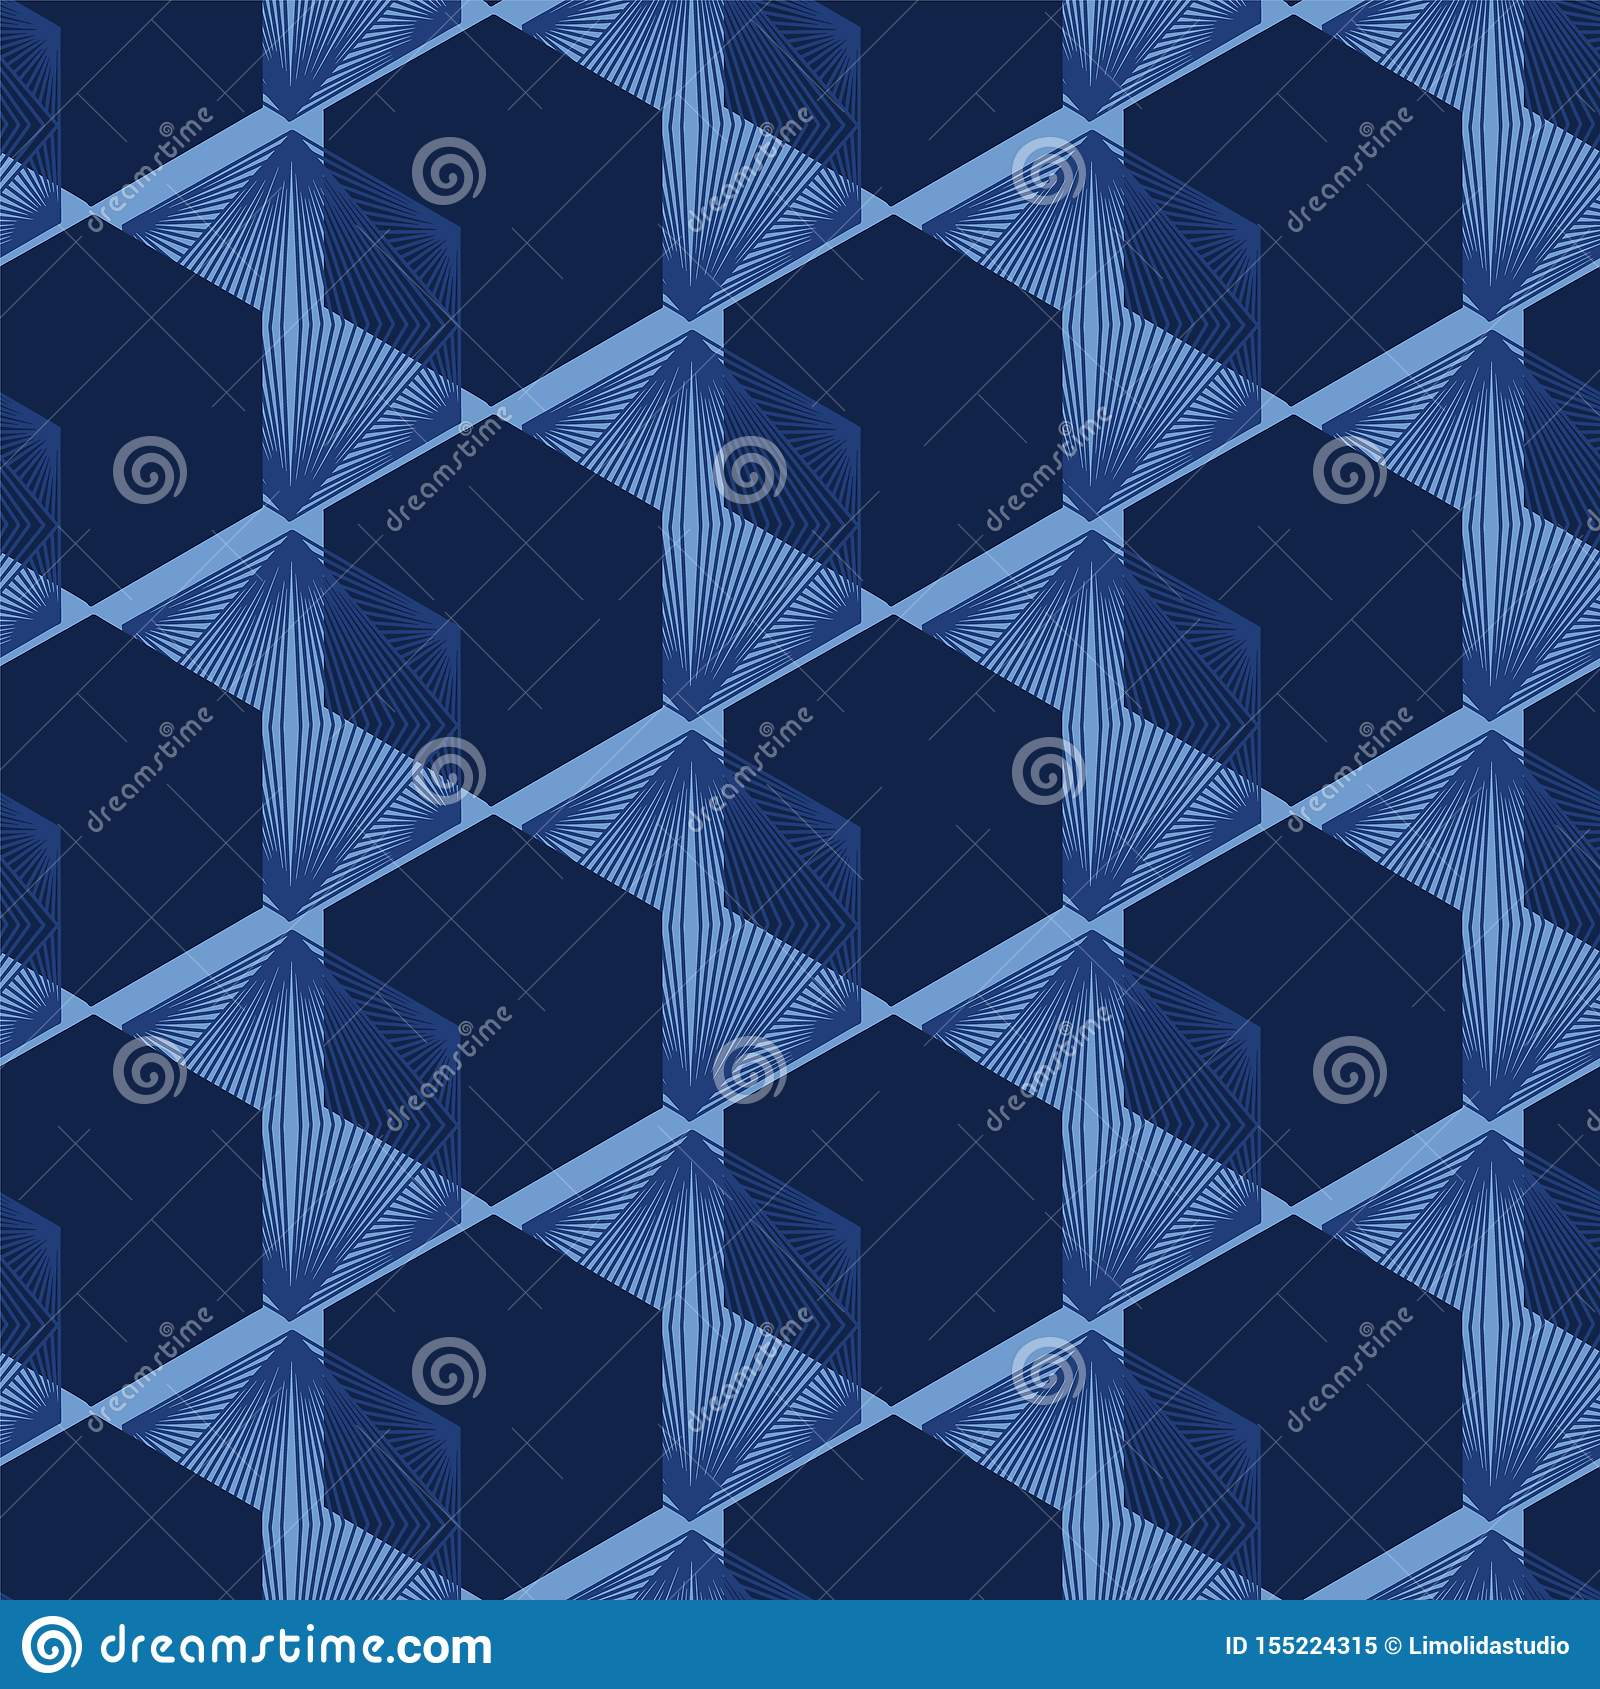 Modern indigo blue geometric hand drawn 3d cube pattern. Repeating abstract background. Ornamental monochrome geo